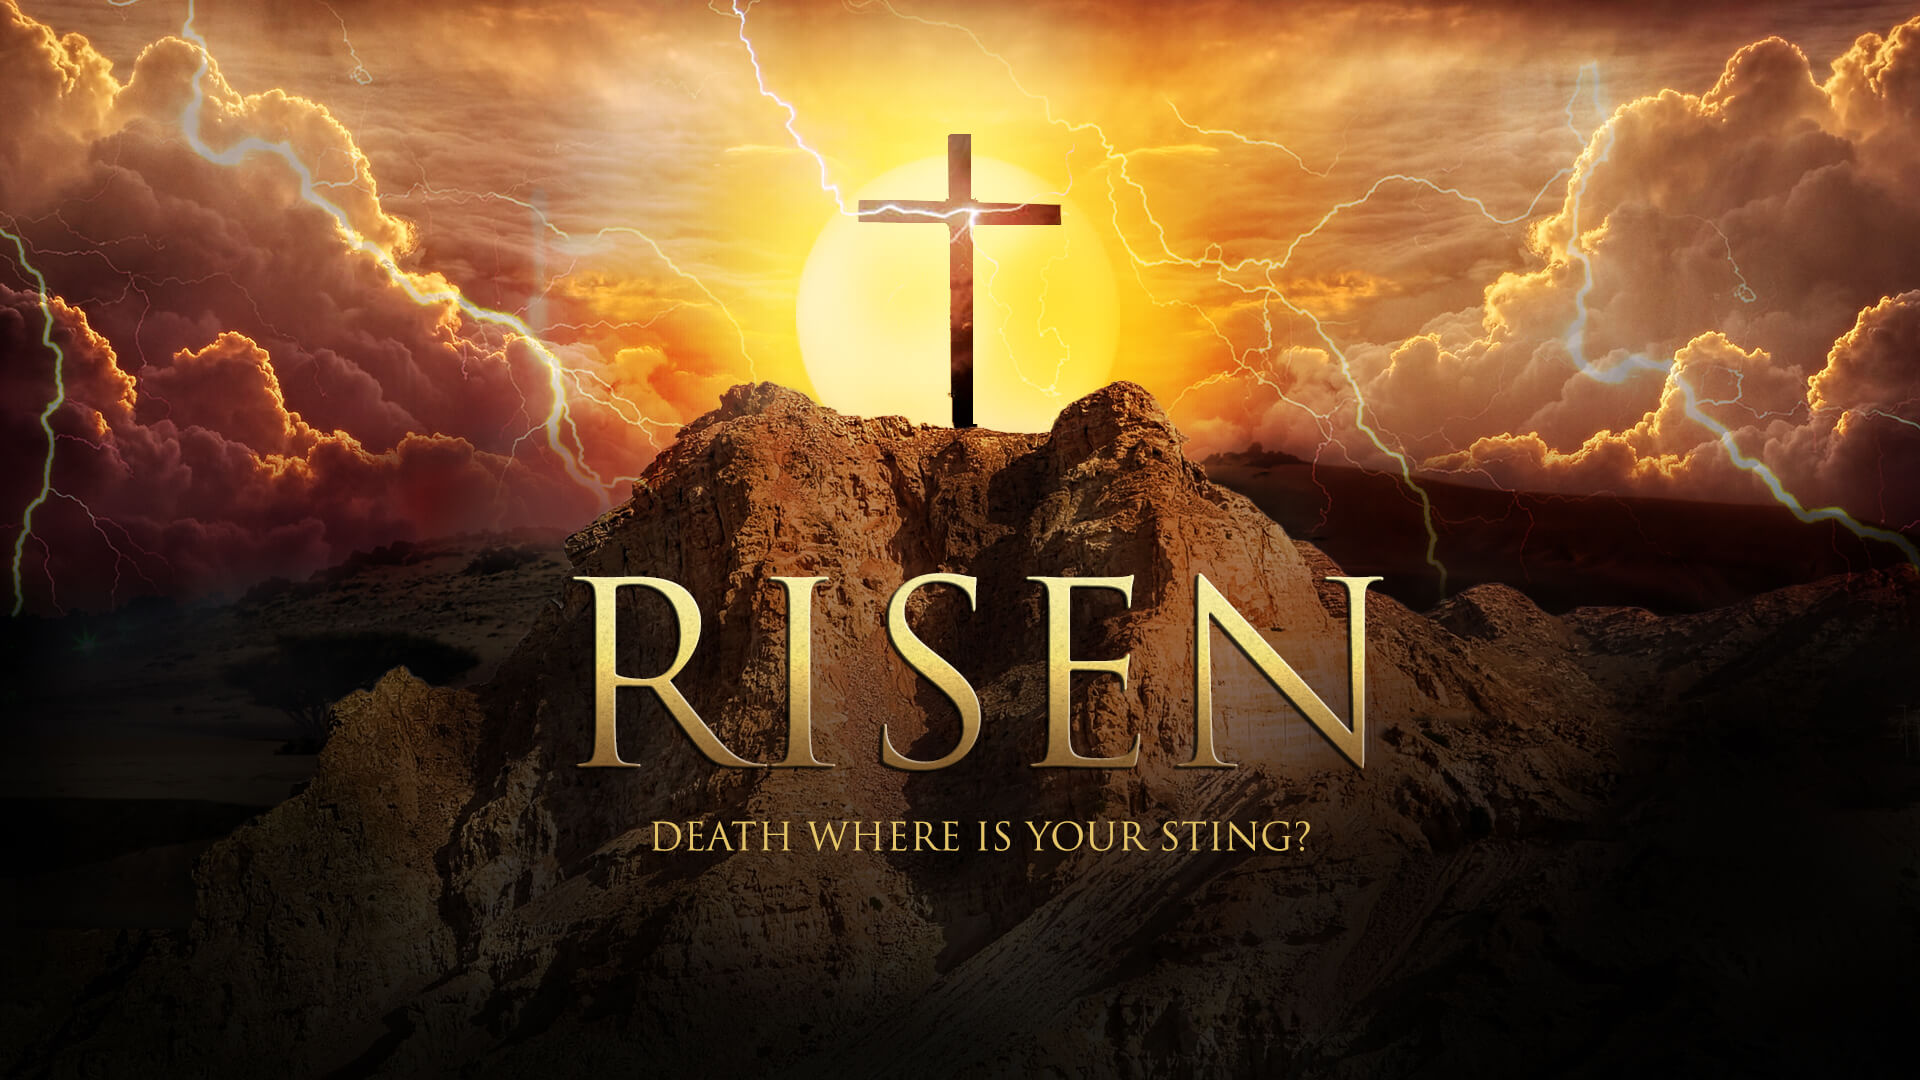 happy easter jesus resurrection risen hd wallpaper desktop background